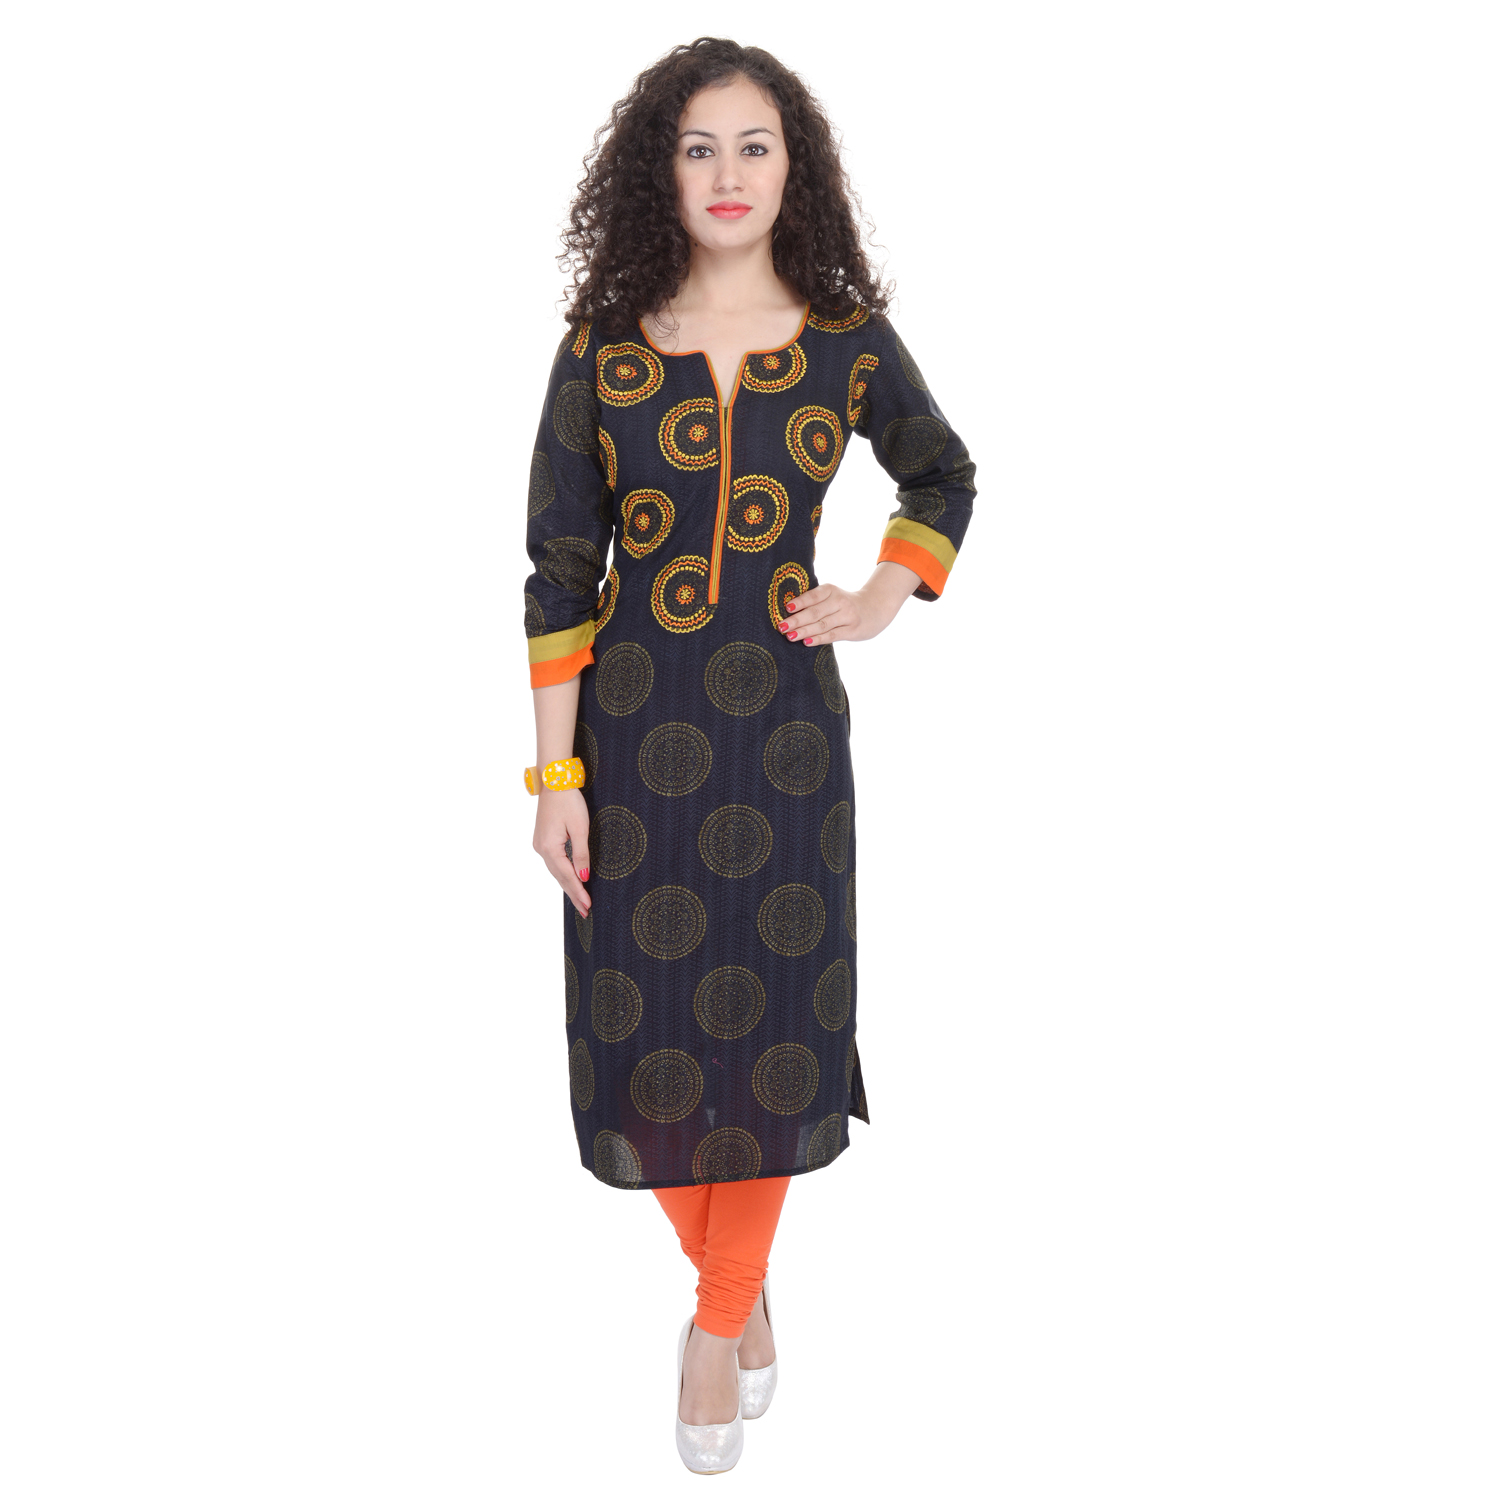 trisha3 Trisha Black Cotton Printed Casual Wear Women Kurti